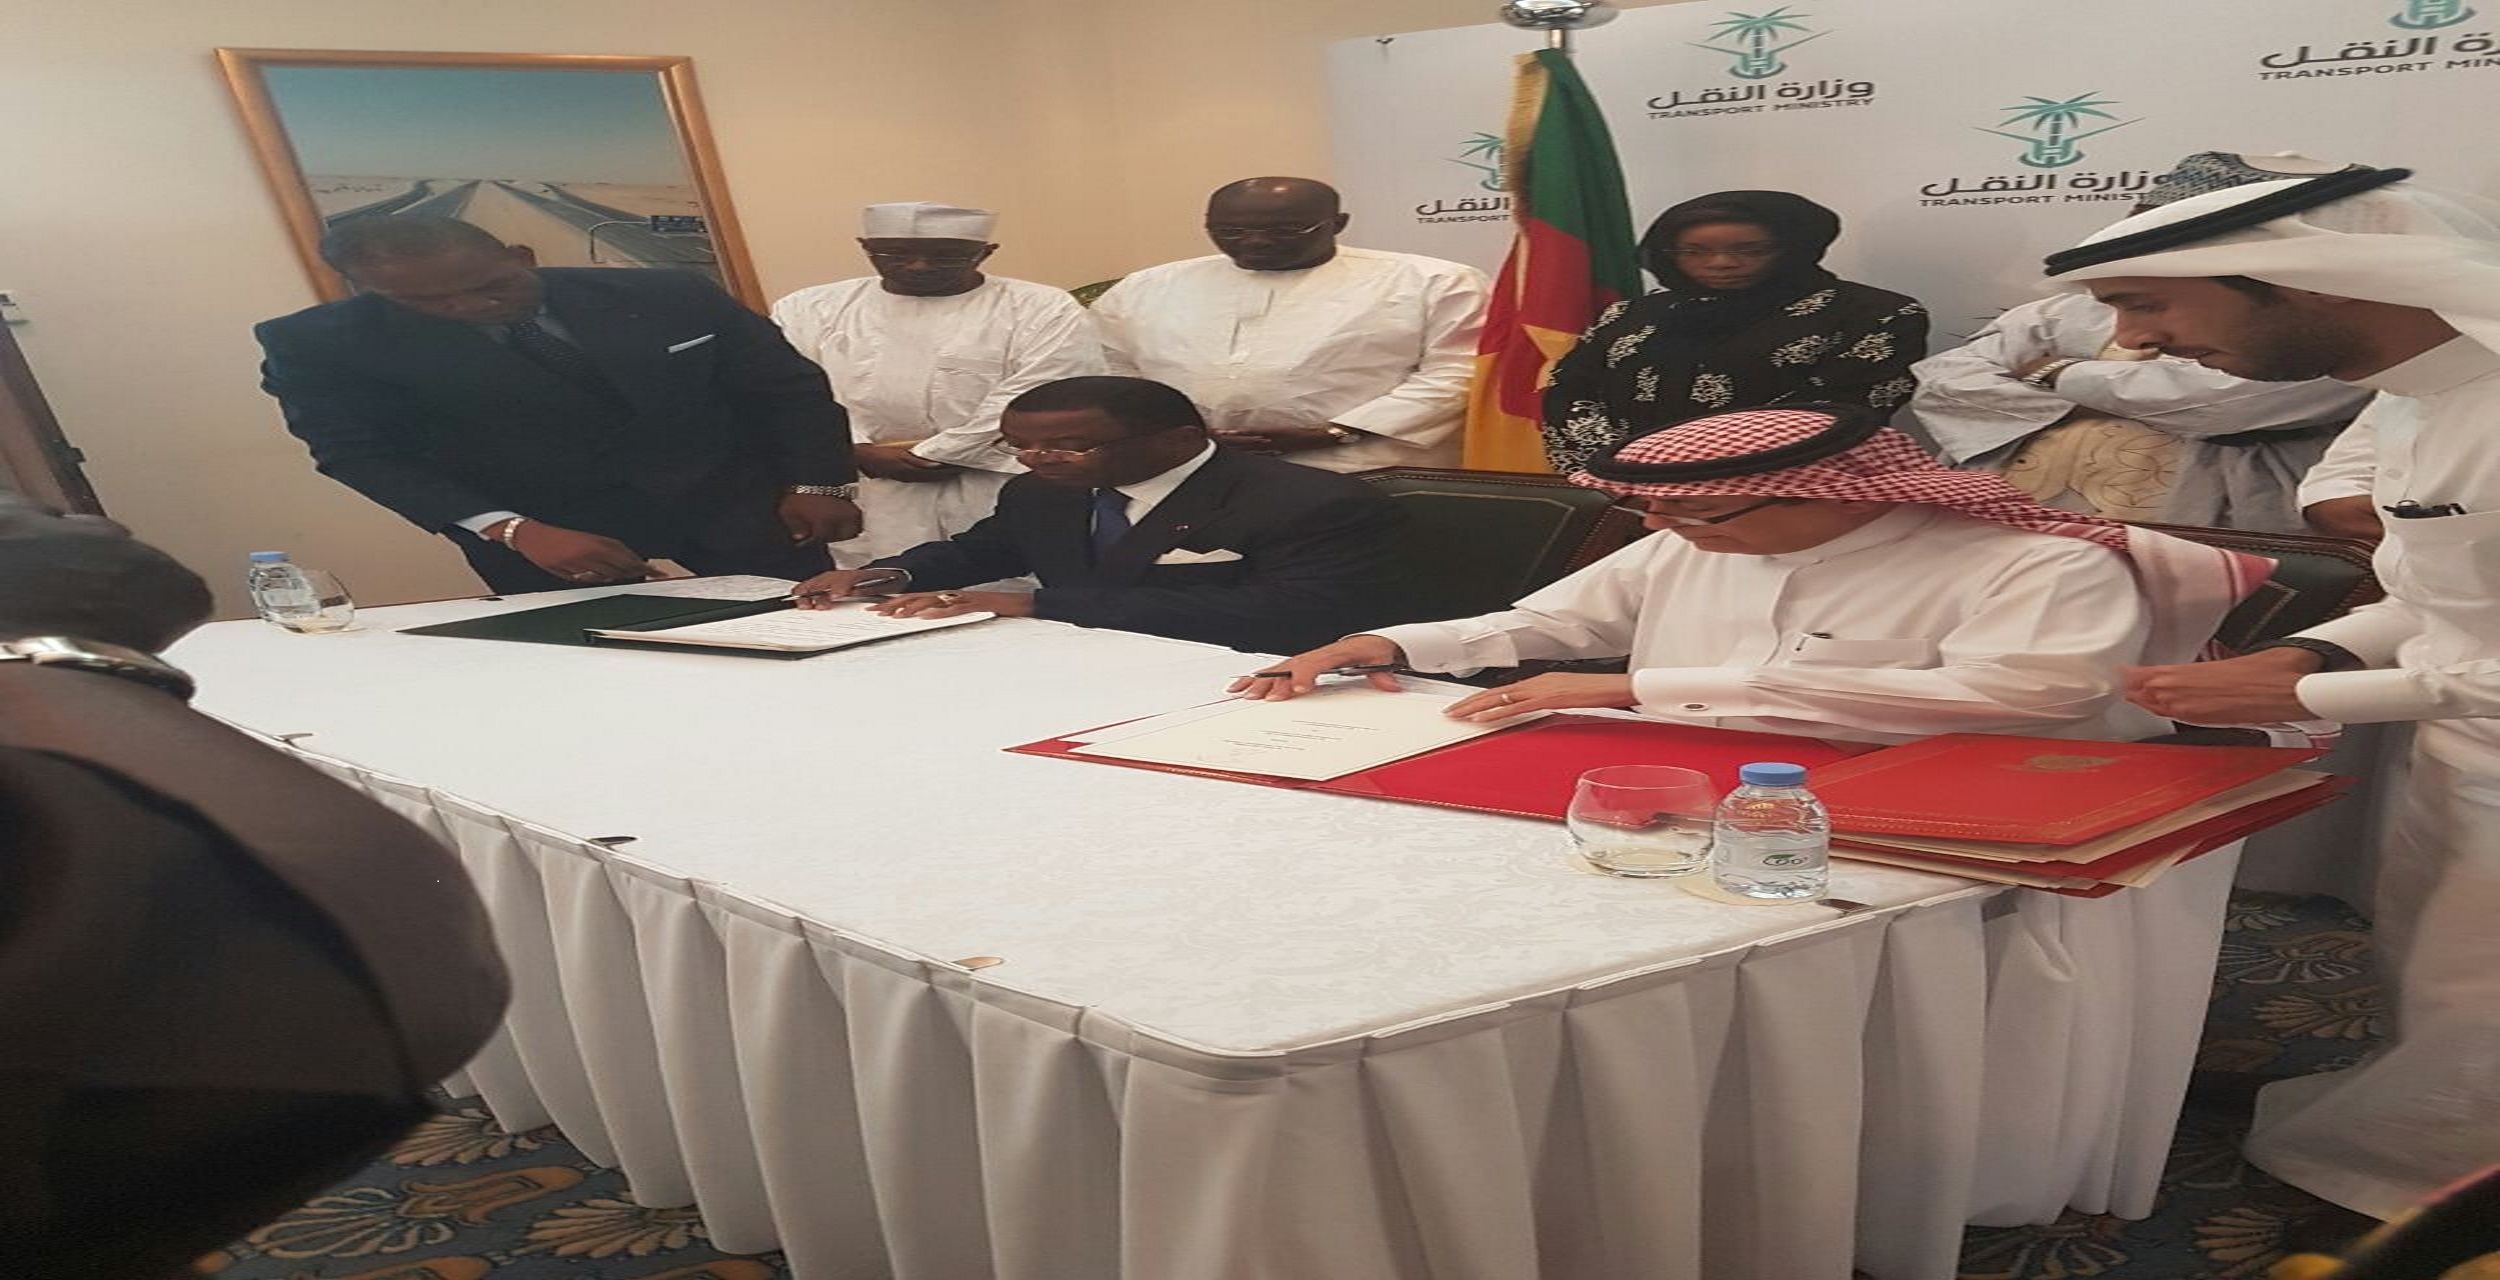 The Kingdom of Saoudi Arabia and Cameroon signed an aviation agreement